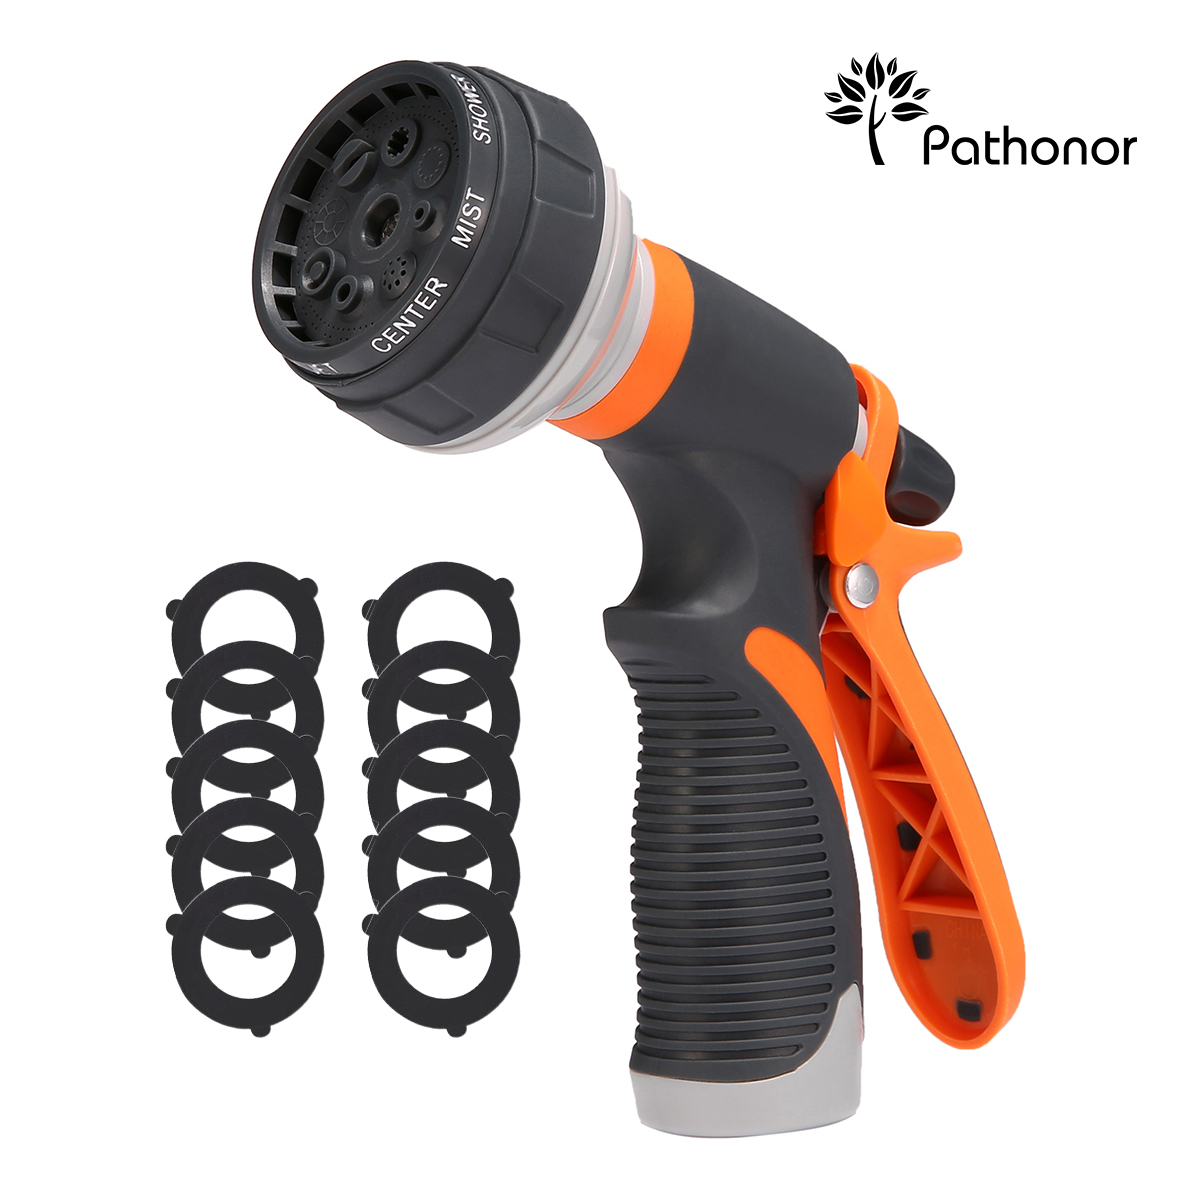 On Clearance PATHONOR Garden Hose Nozzle, Garden Hose Spray Nozzle Heave Duty 8 Pattern Adjustable Multifunctional Watering Nozzle For Watering Plants, Car Washing, Shower Pets